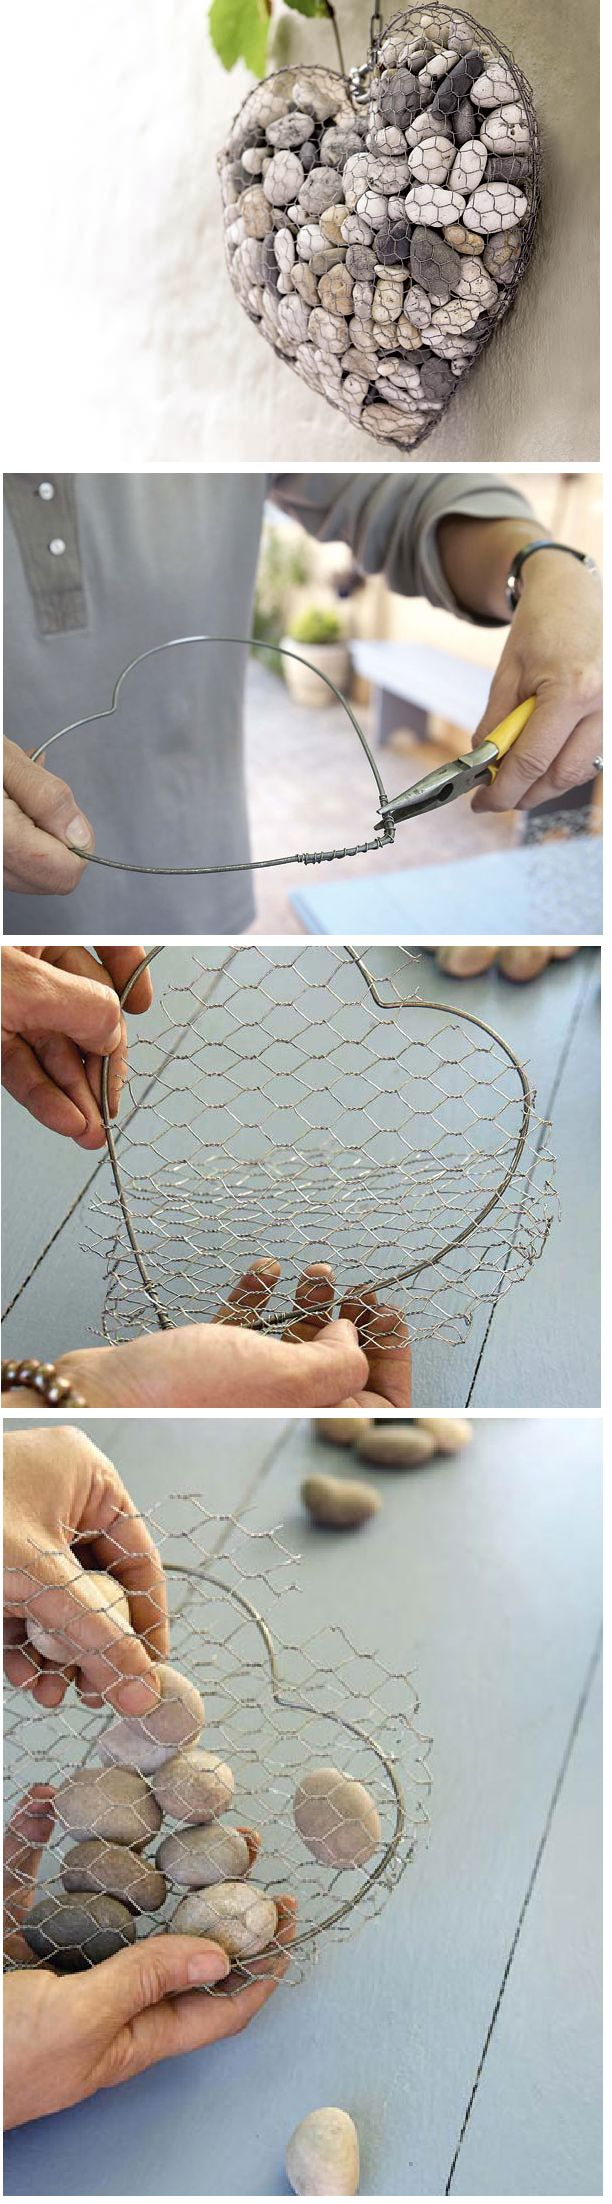 Instead of stones, fill it with twine, small twigs, etc.... for birds to build nests